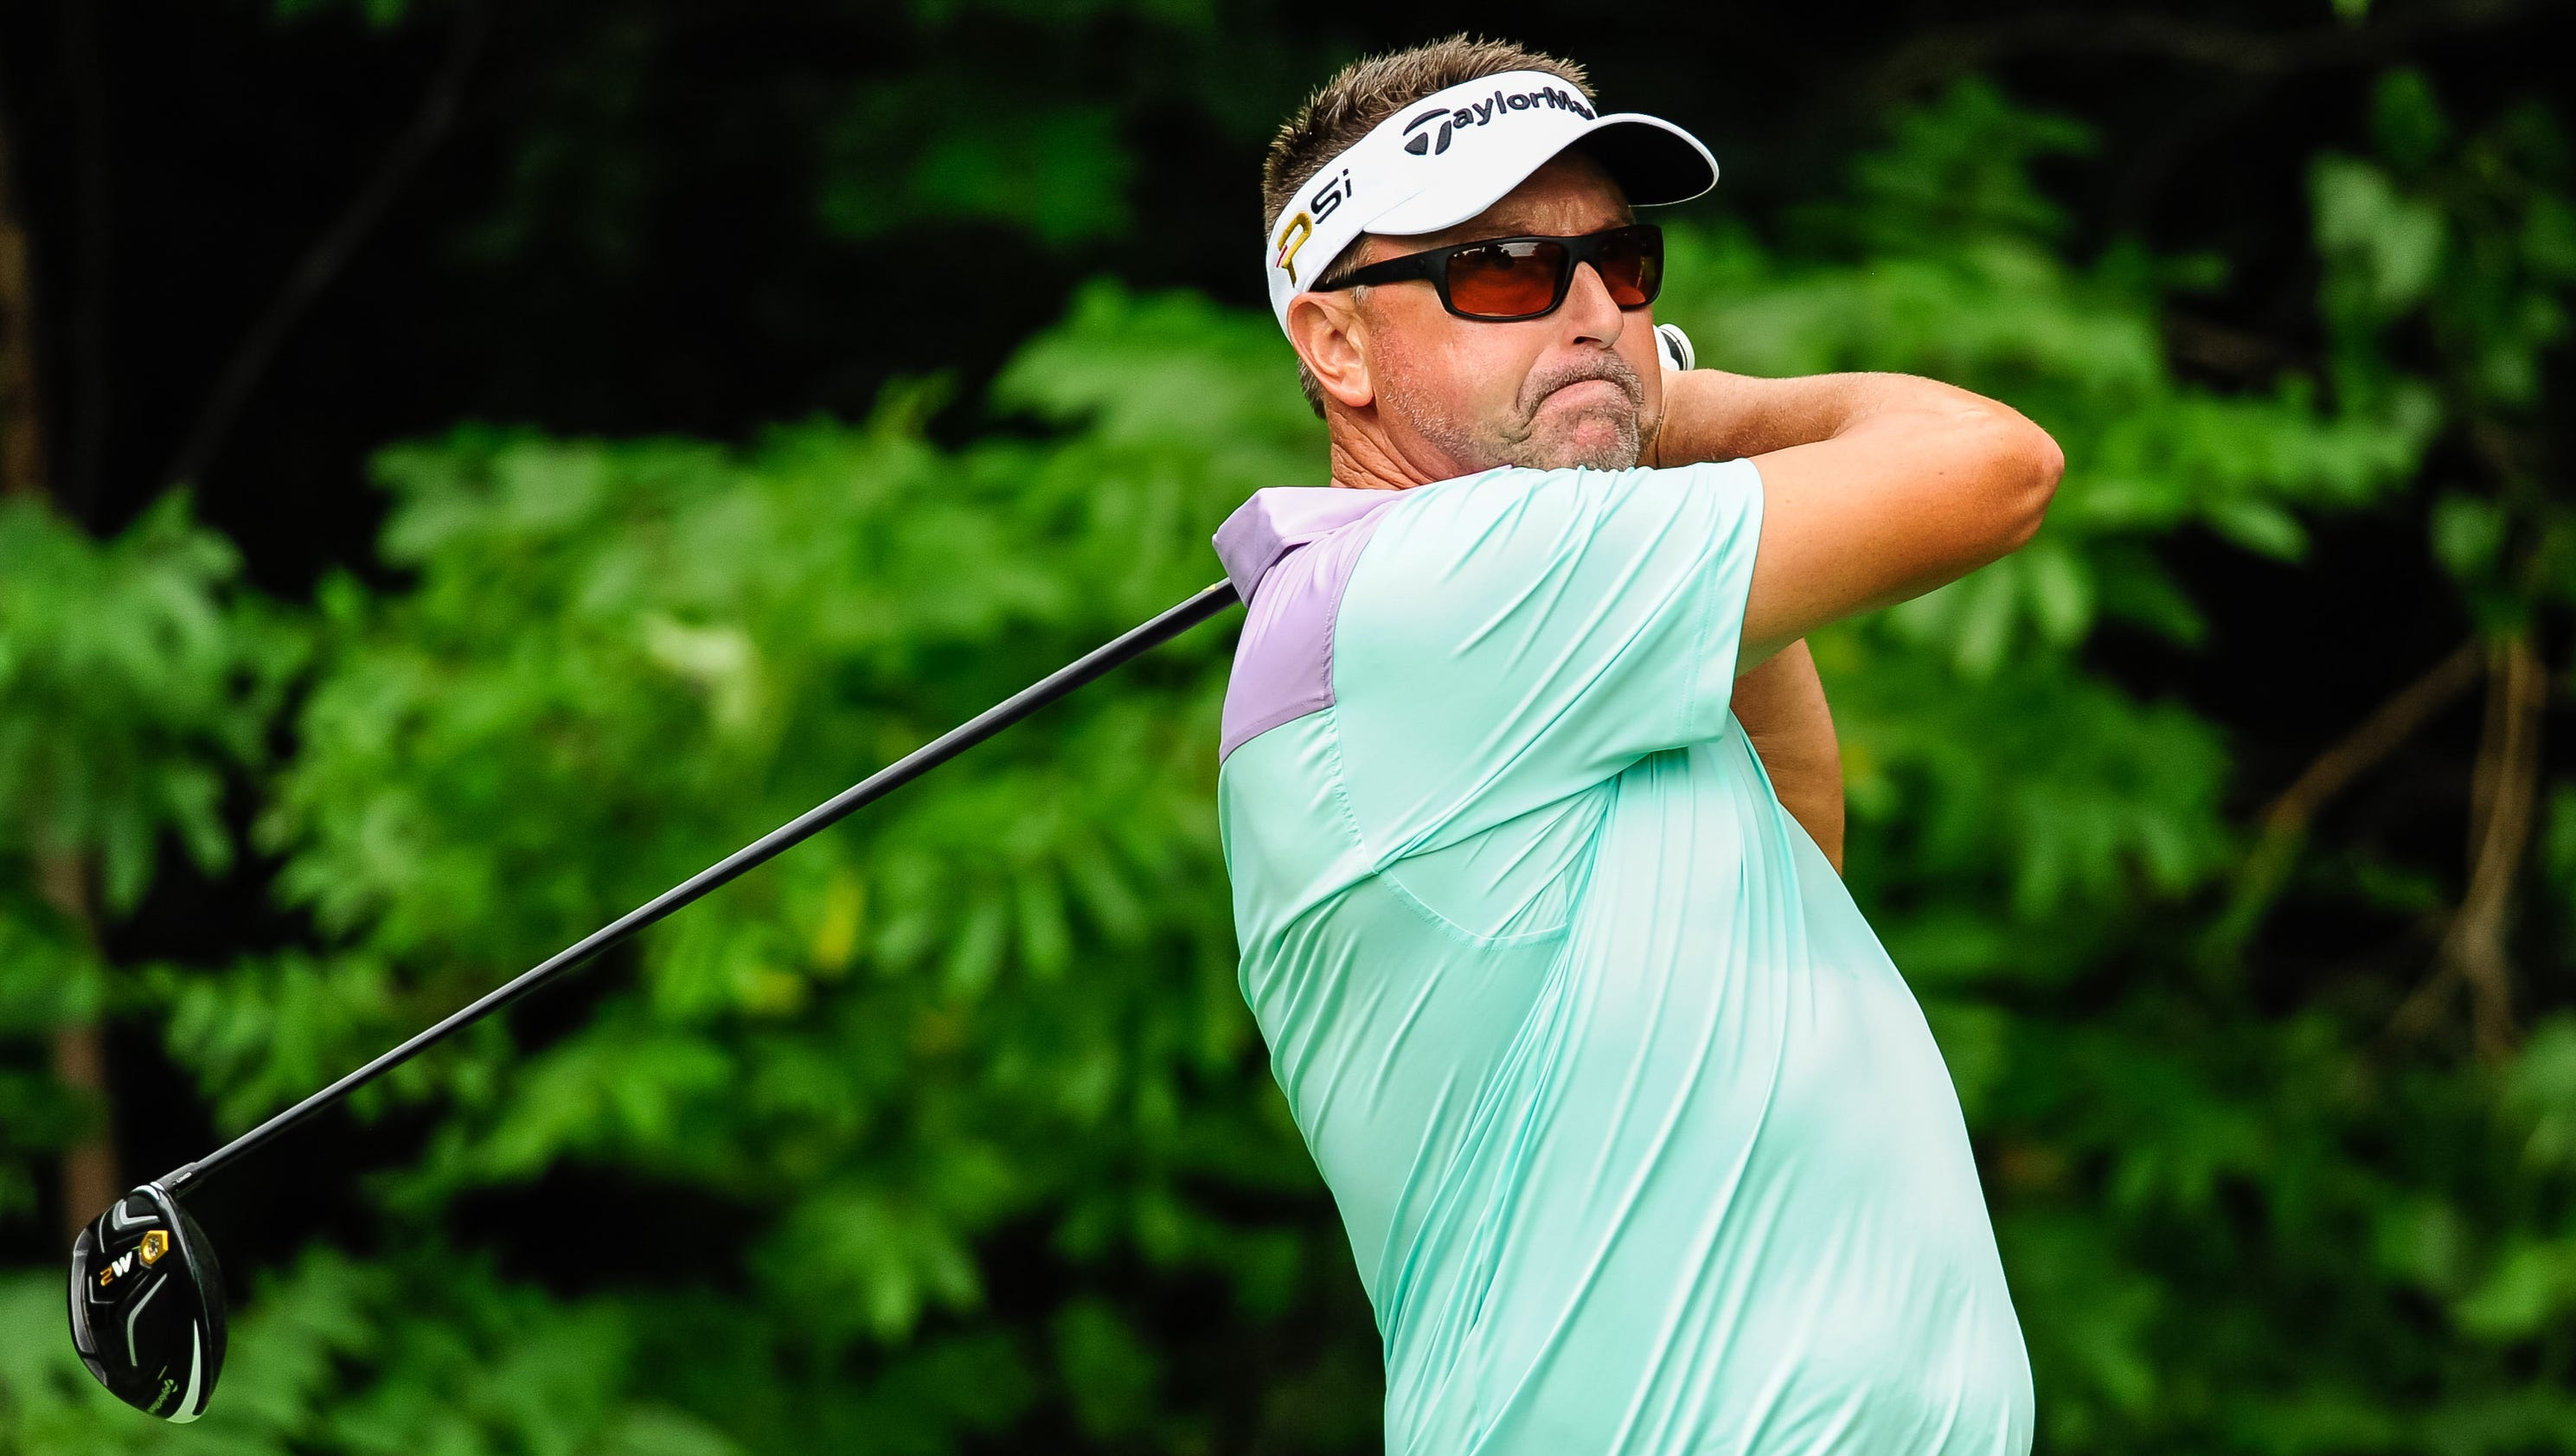 pga tour golfer robert allenby says  u0026 39 no story u0026 39  to arrest